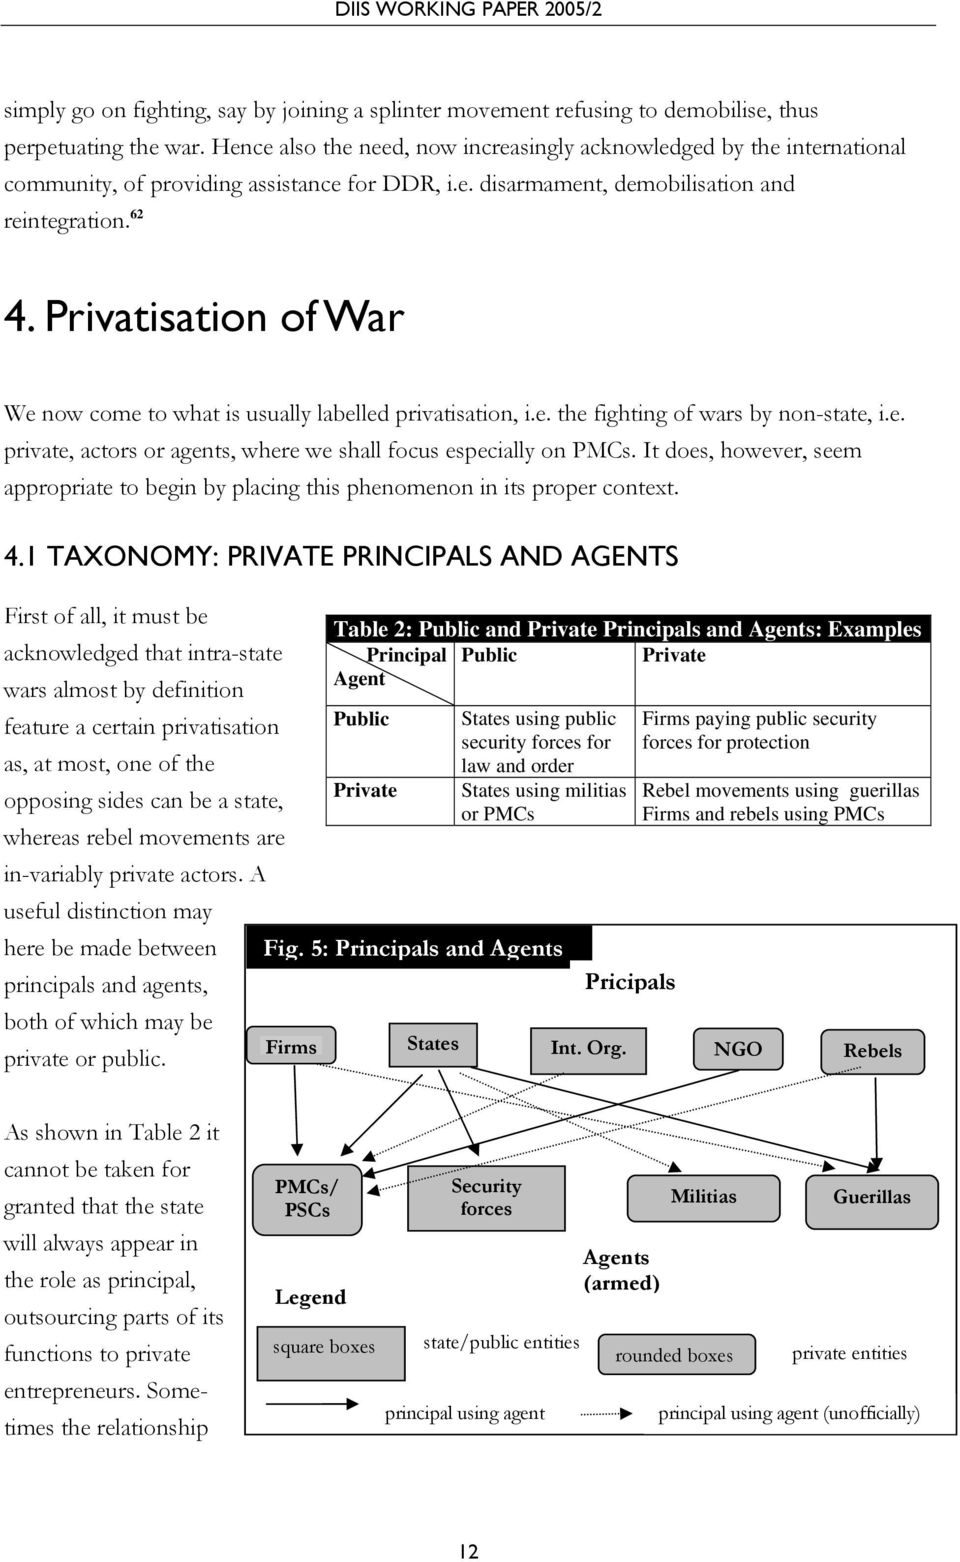 Privatisation of War We now come to what is usually labelled privatisation, i.e. the fighting of wars by non-state, i.e. private, actors or agents, where we shall focus especially on PMCs.